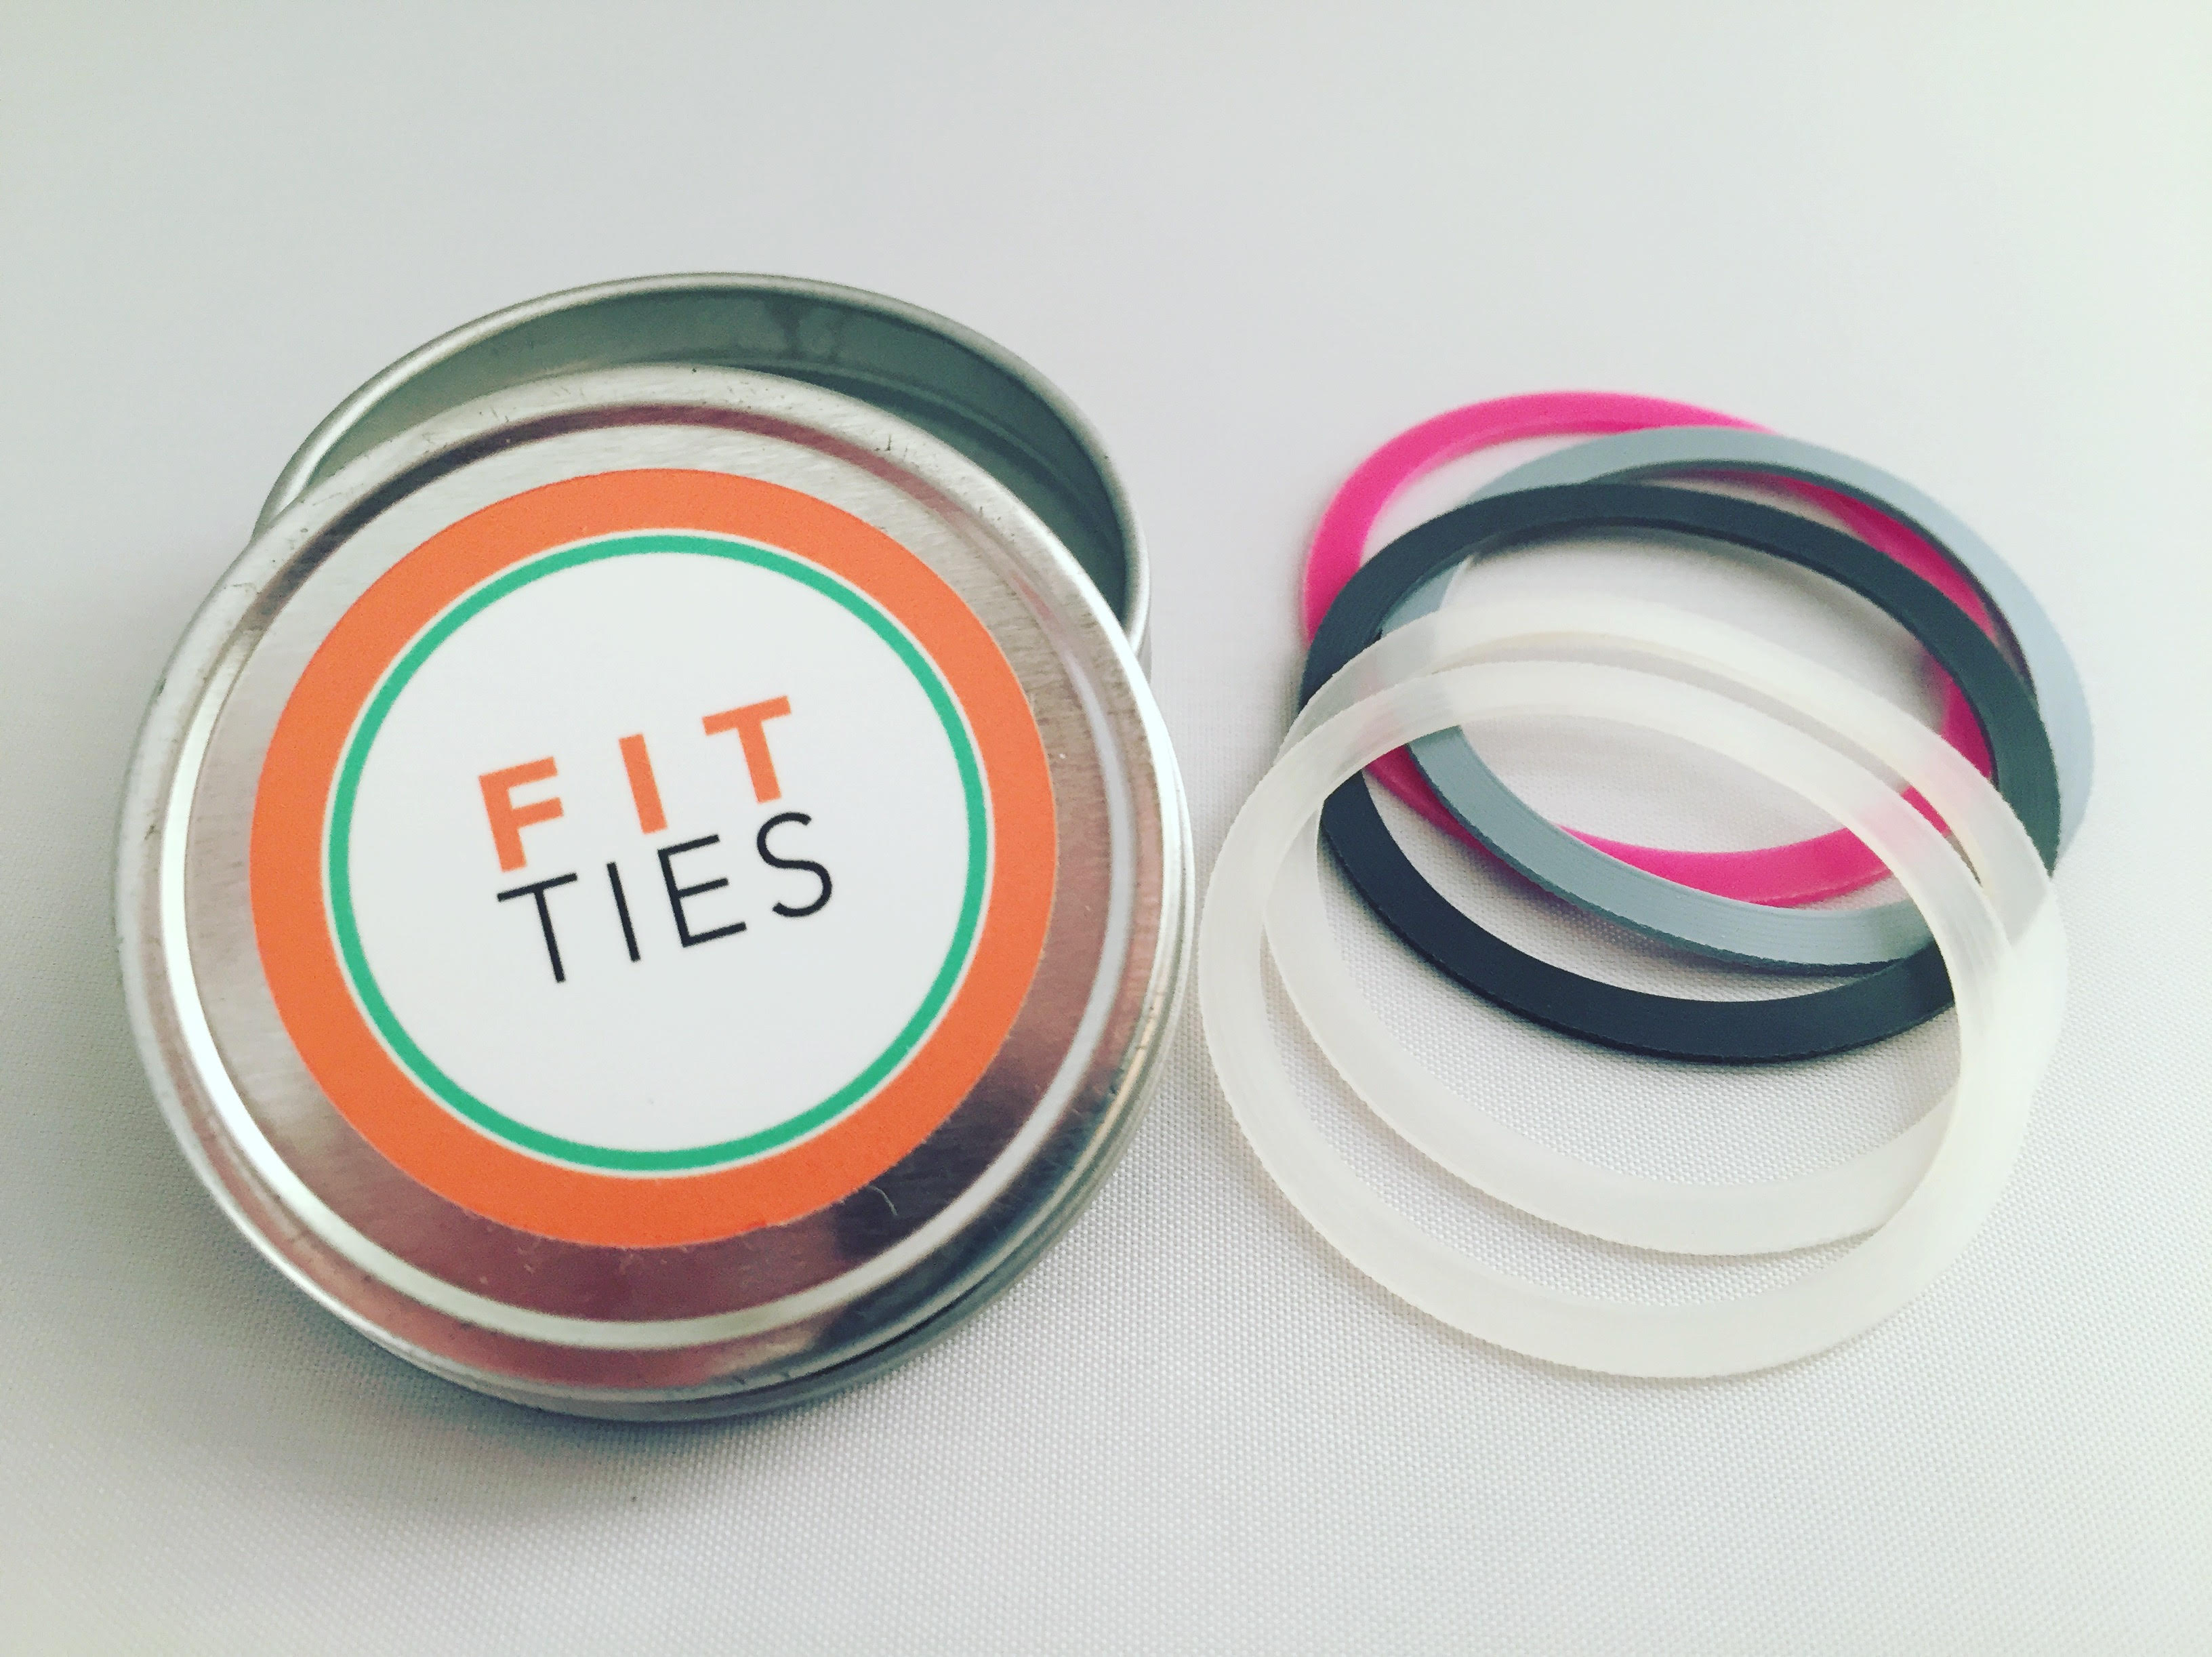 FIT TIES with Tin